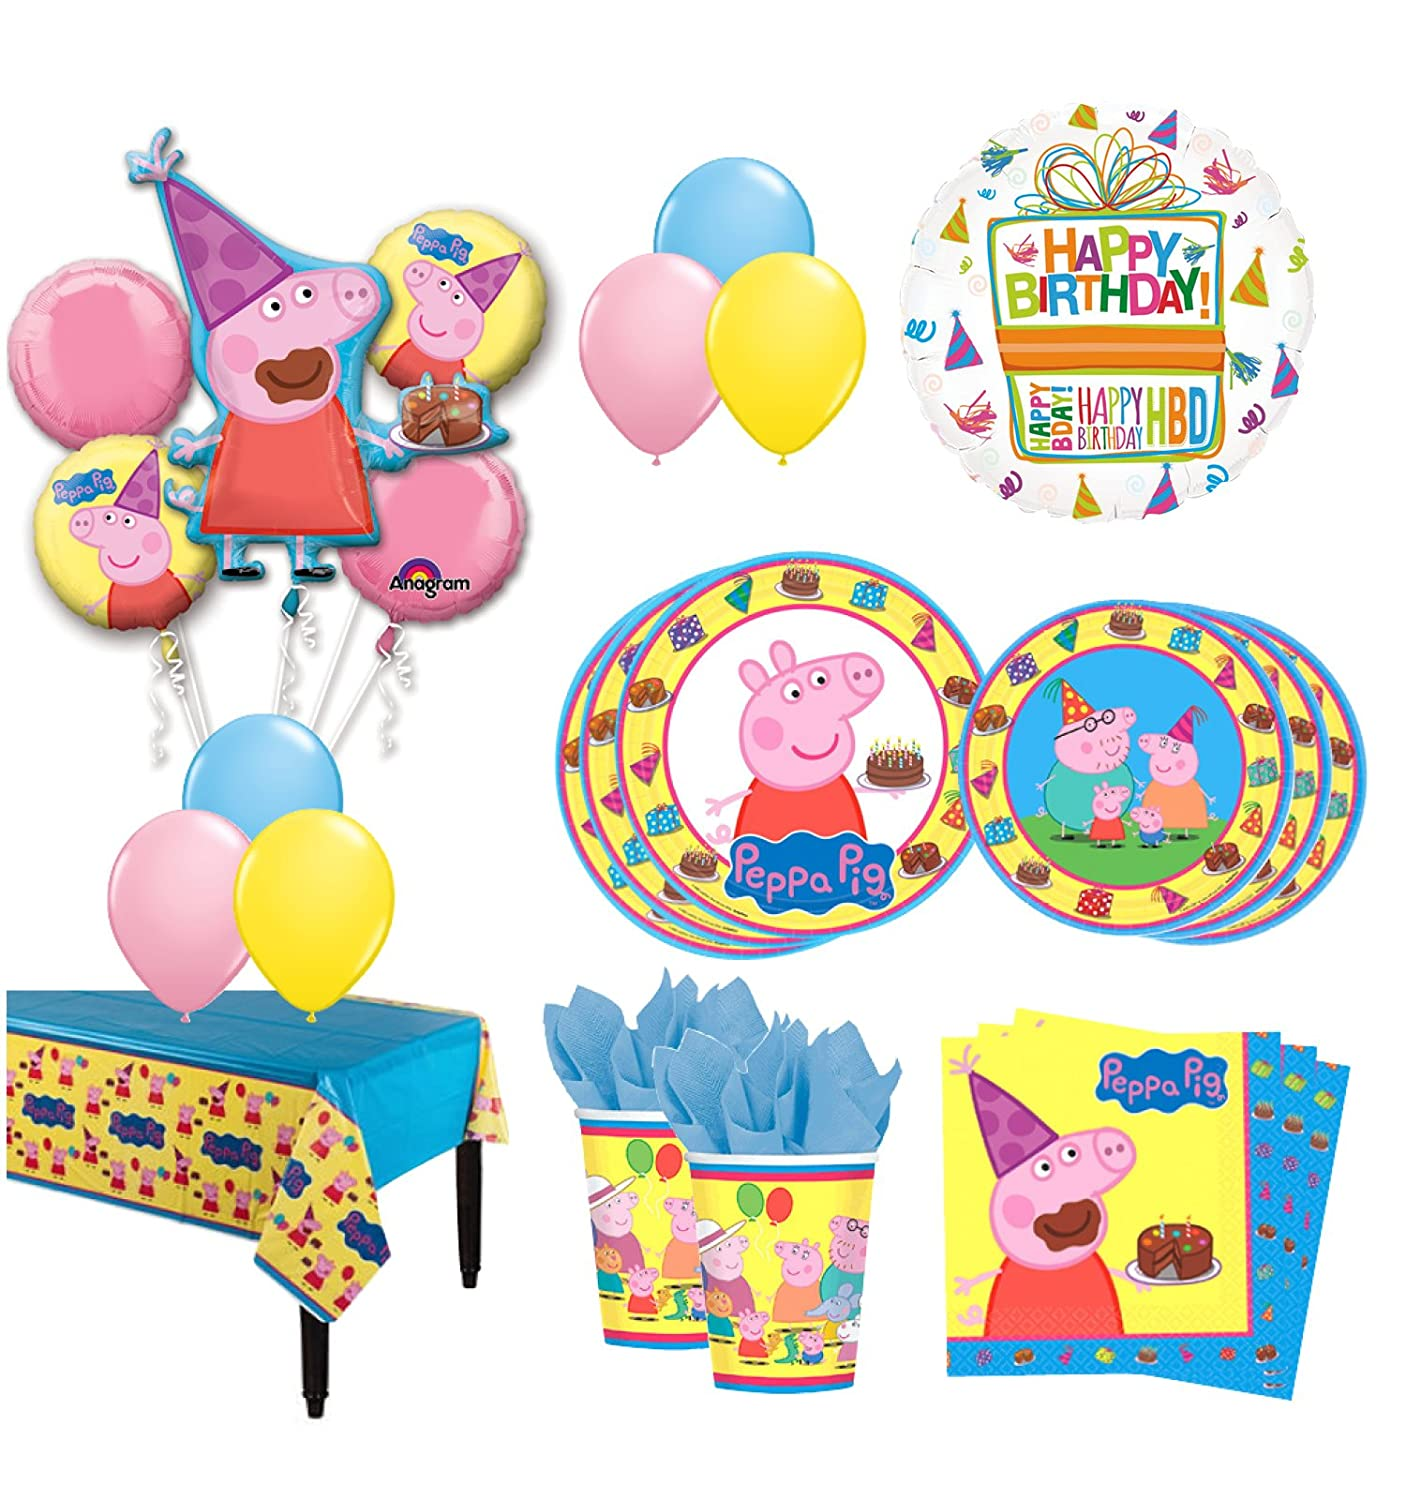 brielles pig birthday s decor brielle peppa picnic a party decorations parties